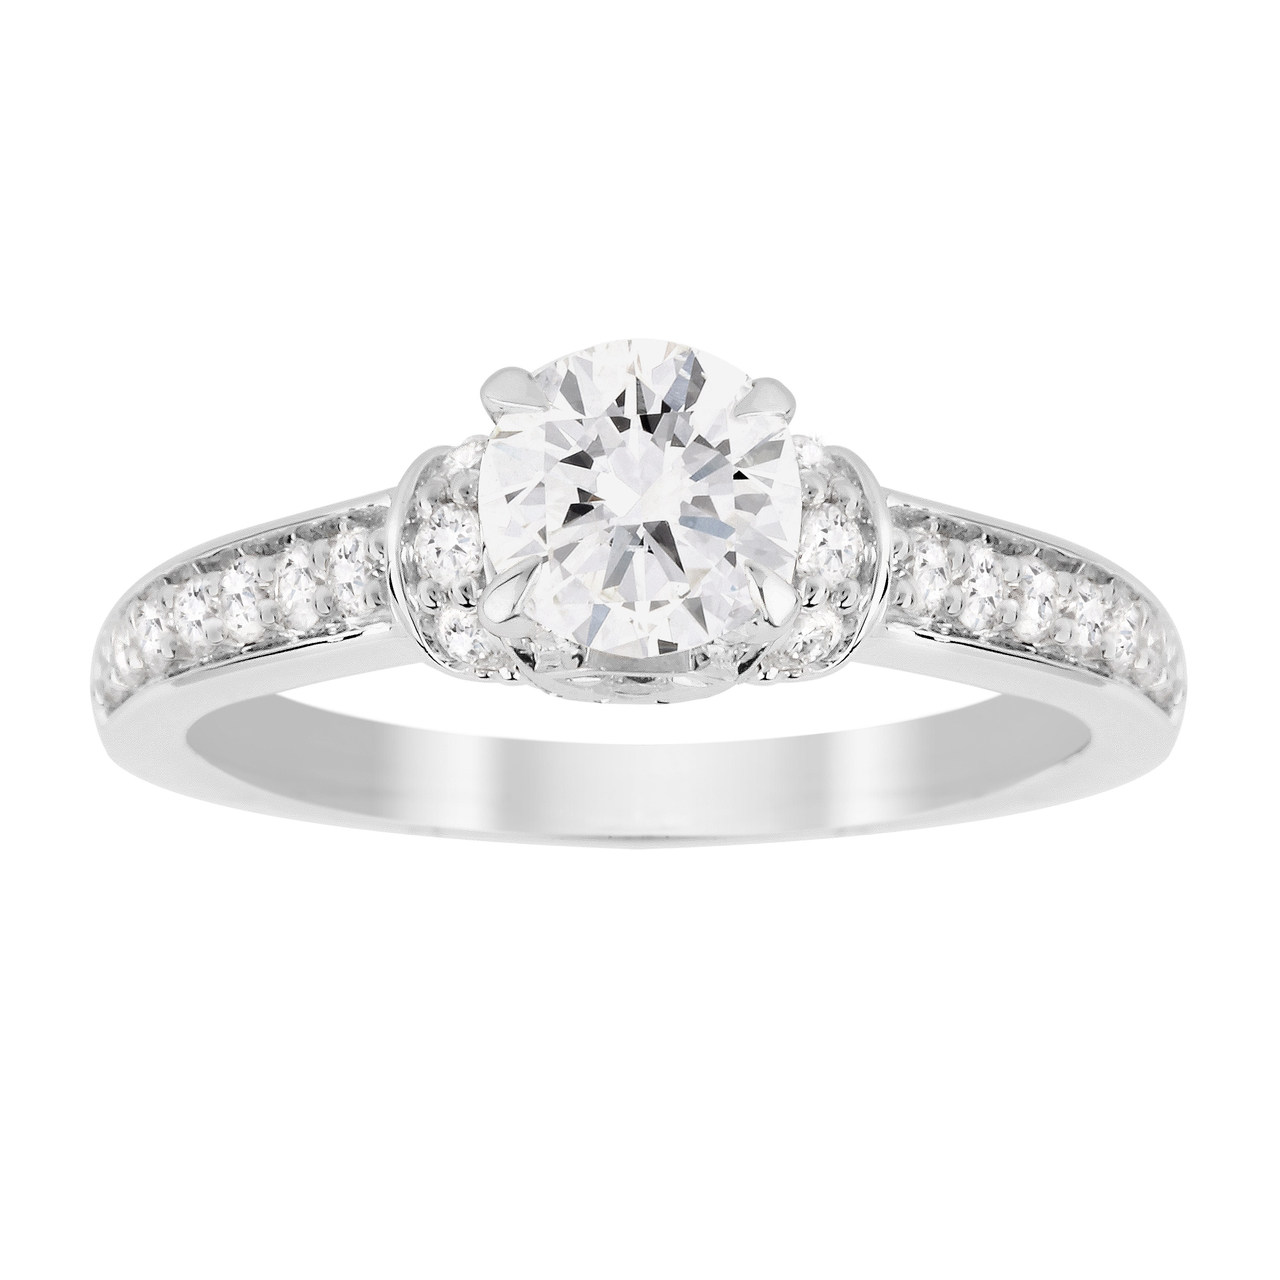 Jenny Packham Brilliant Cut 1.14 Carat Total Weight Diamond Art Deco Style Ring in 18 Carat White Go